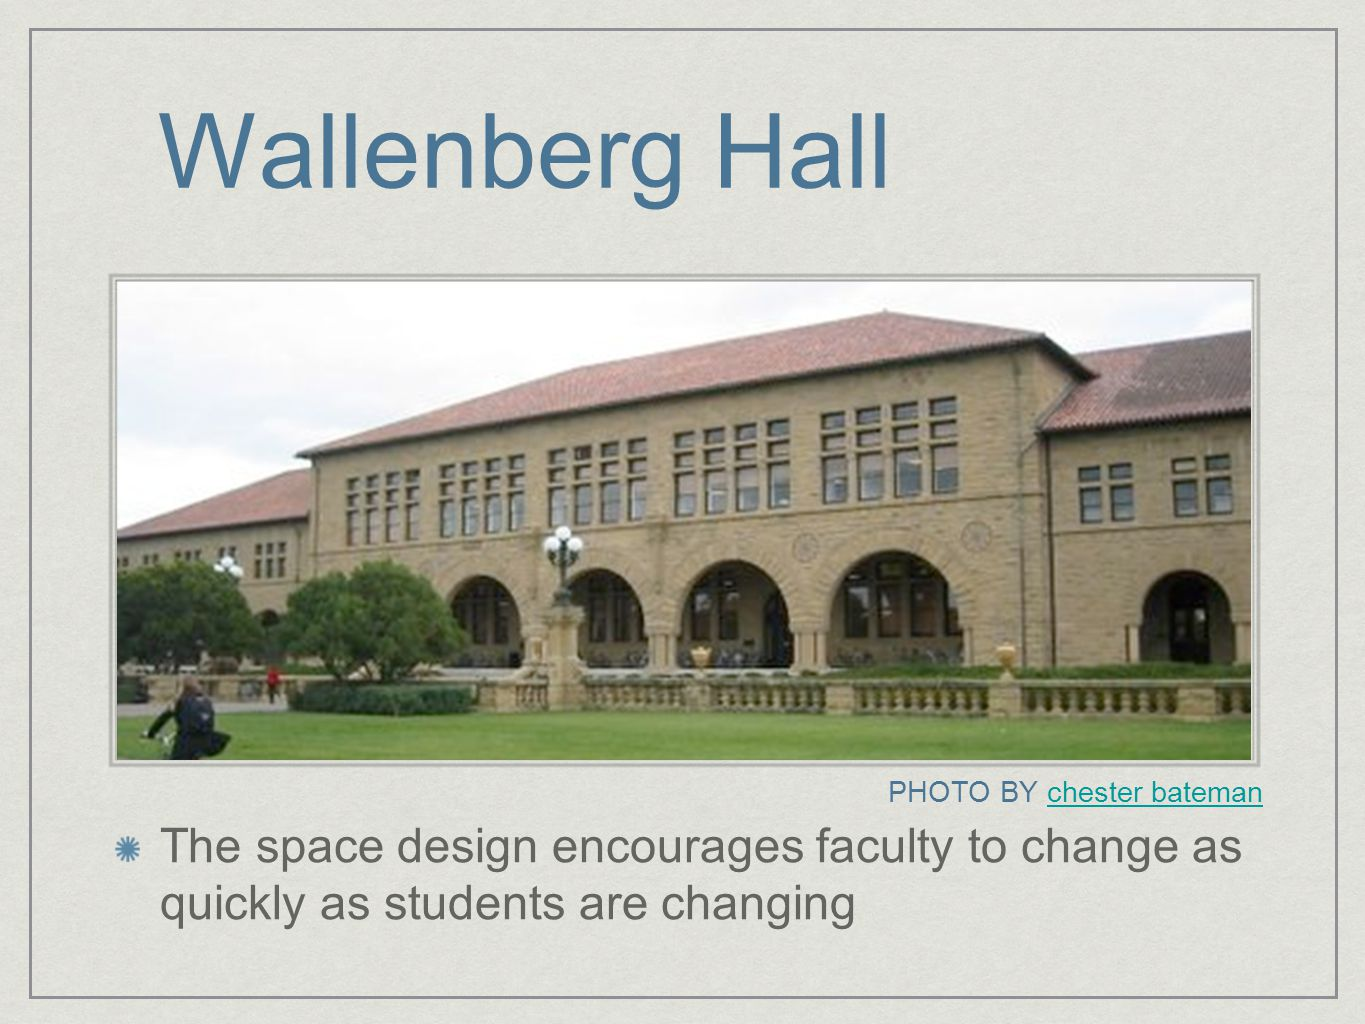 Wallenberg Hall The space design encourages faculty to change as quickly as students are changing PHOTO BY chester batemanchester bateman